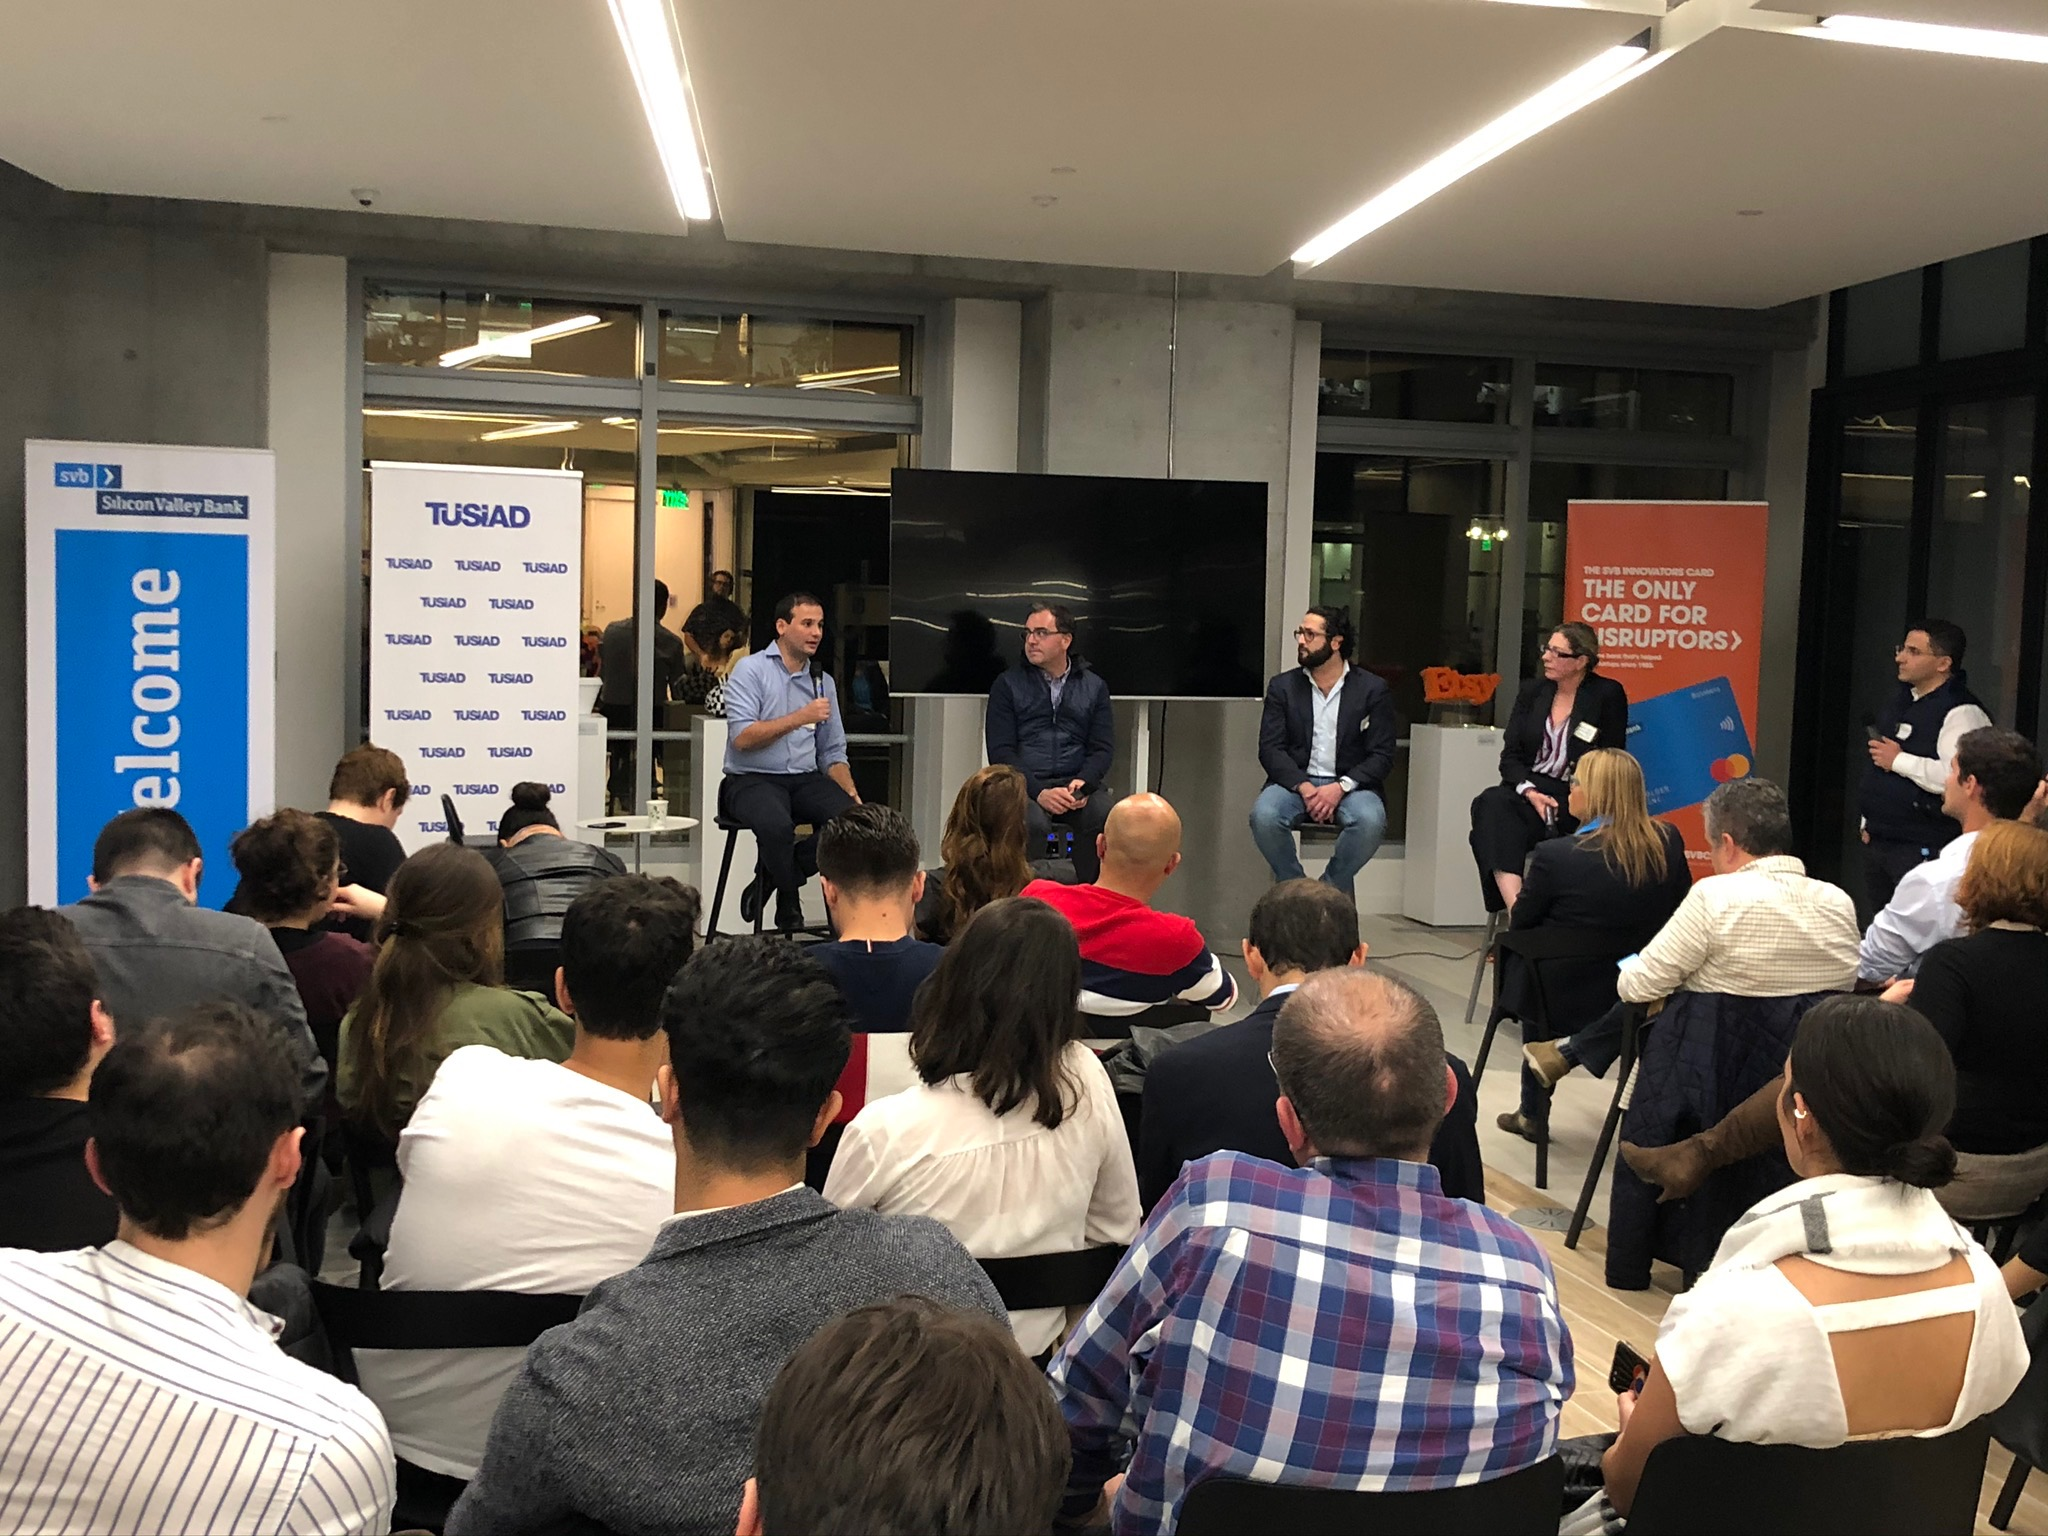 <p>What are the factors a startup should consider when selecting advisors? How do you keep your advisors motivated and engaged?  On November 7, 2019, the TUSIAD Silicon Valley Network organized a panel discussion on how to build an advisory board for startups at Silicon Valley Bank in San Francisco.</p>